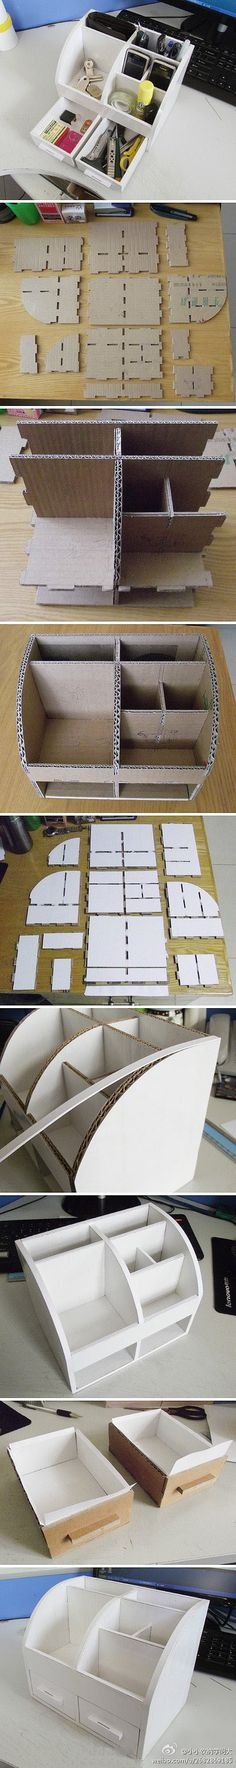 Cardboard storage with dividers